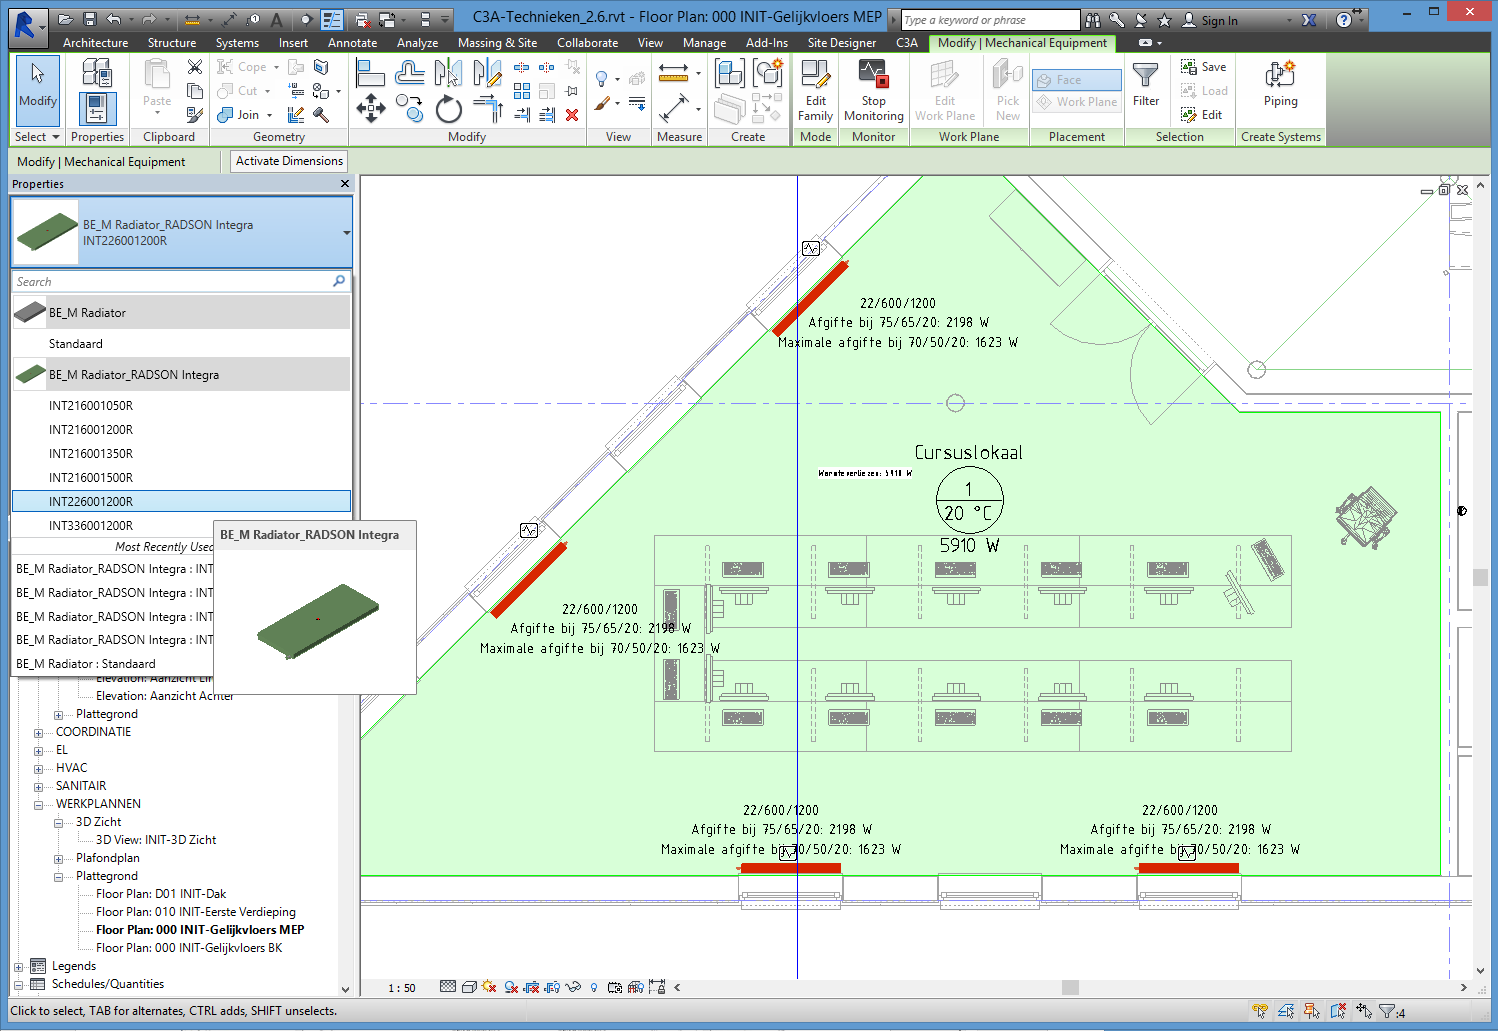 blad 30 REVIT Multidiciplinair Samenwerken C3A-Witas Workshop 18 mrt 2015 g. Om een ander type radiator in het Project te laden kunnen we browsen naar de Families in de Project Browser.